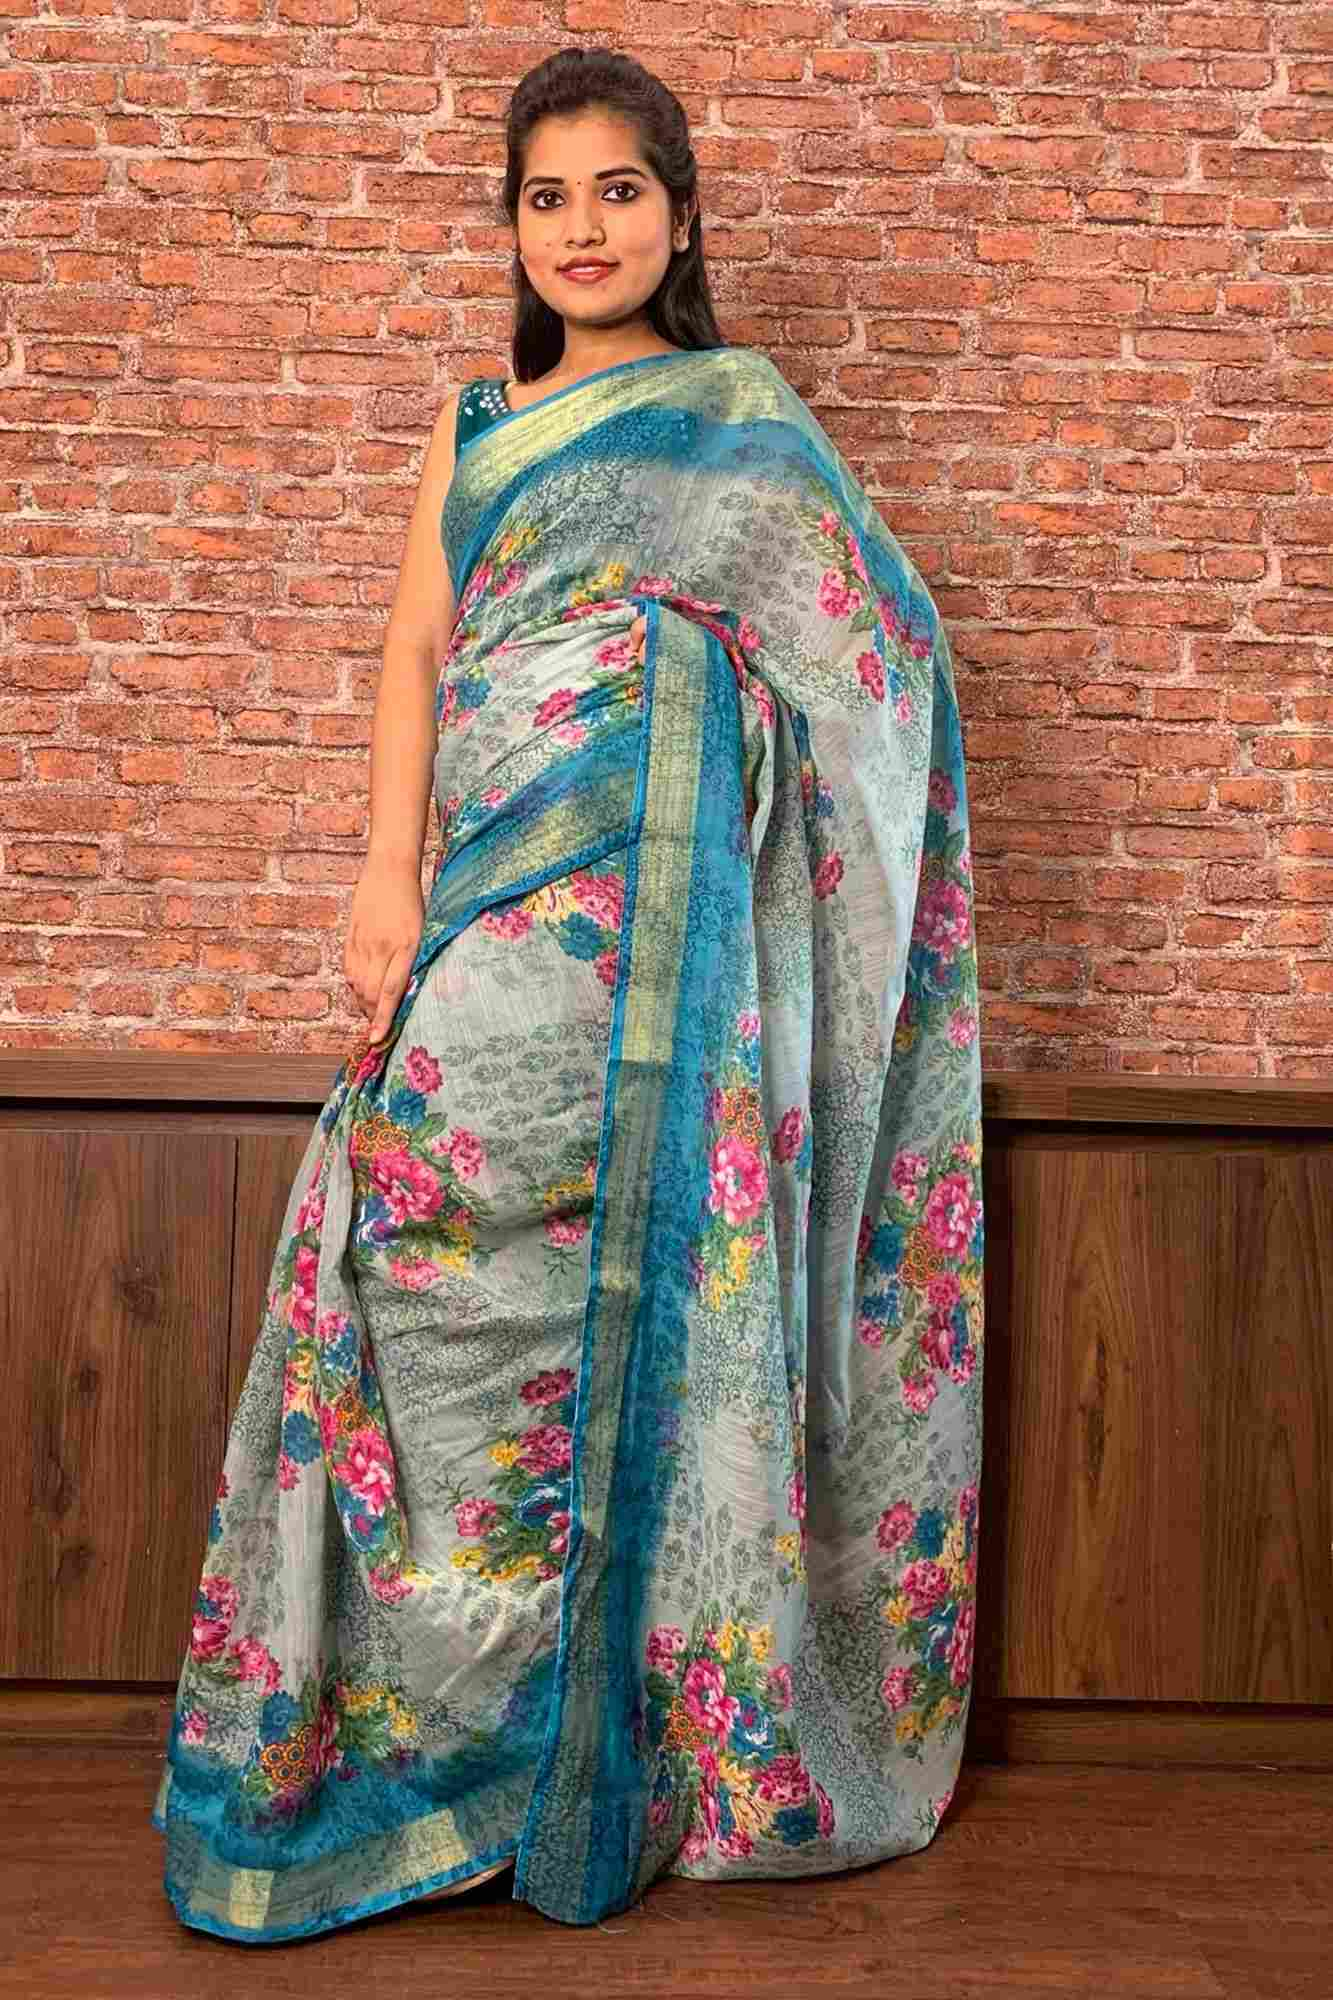 Greenish bluish mix floral linen blend with zari border & floral print wrap in 1 minute saree - End of Season Sale